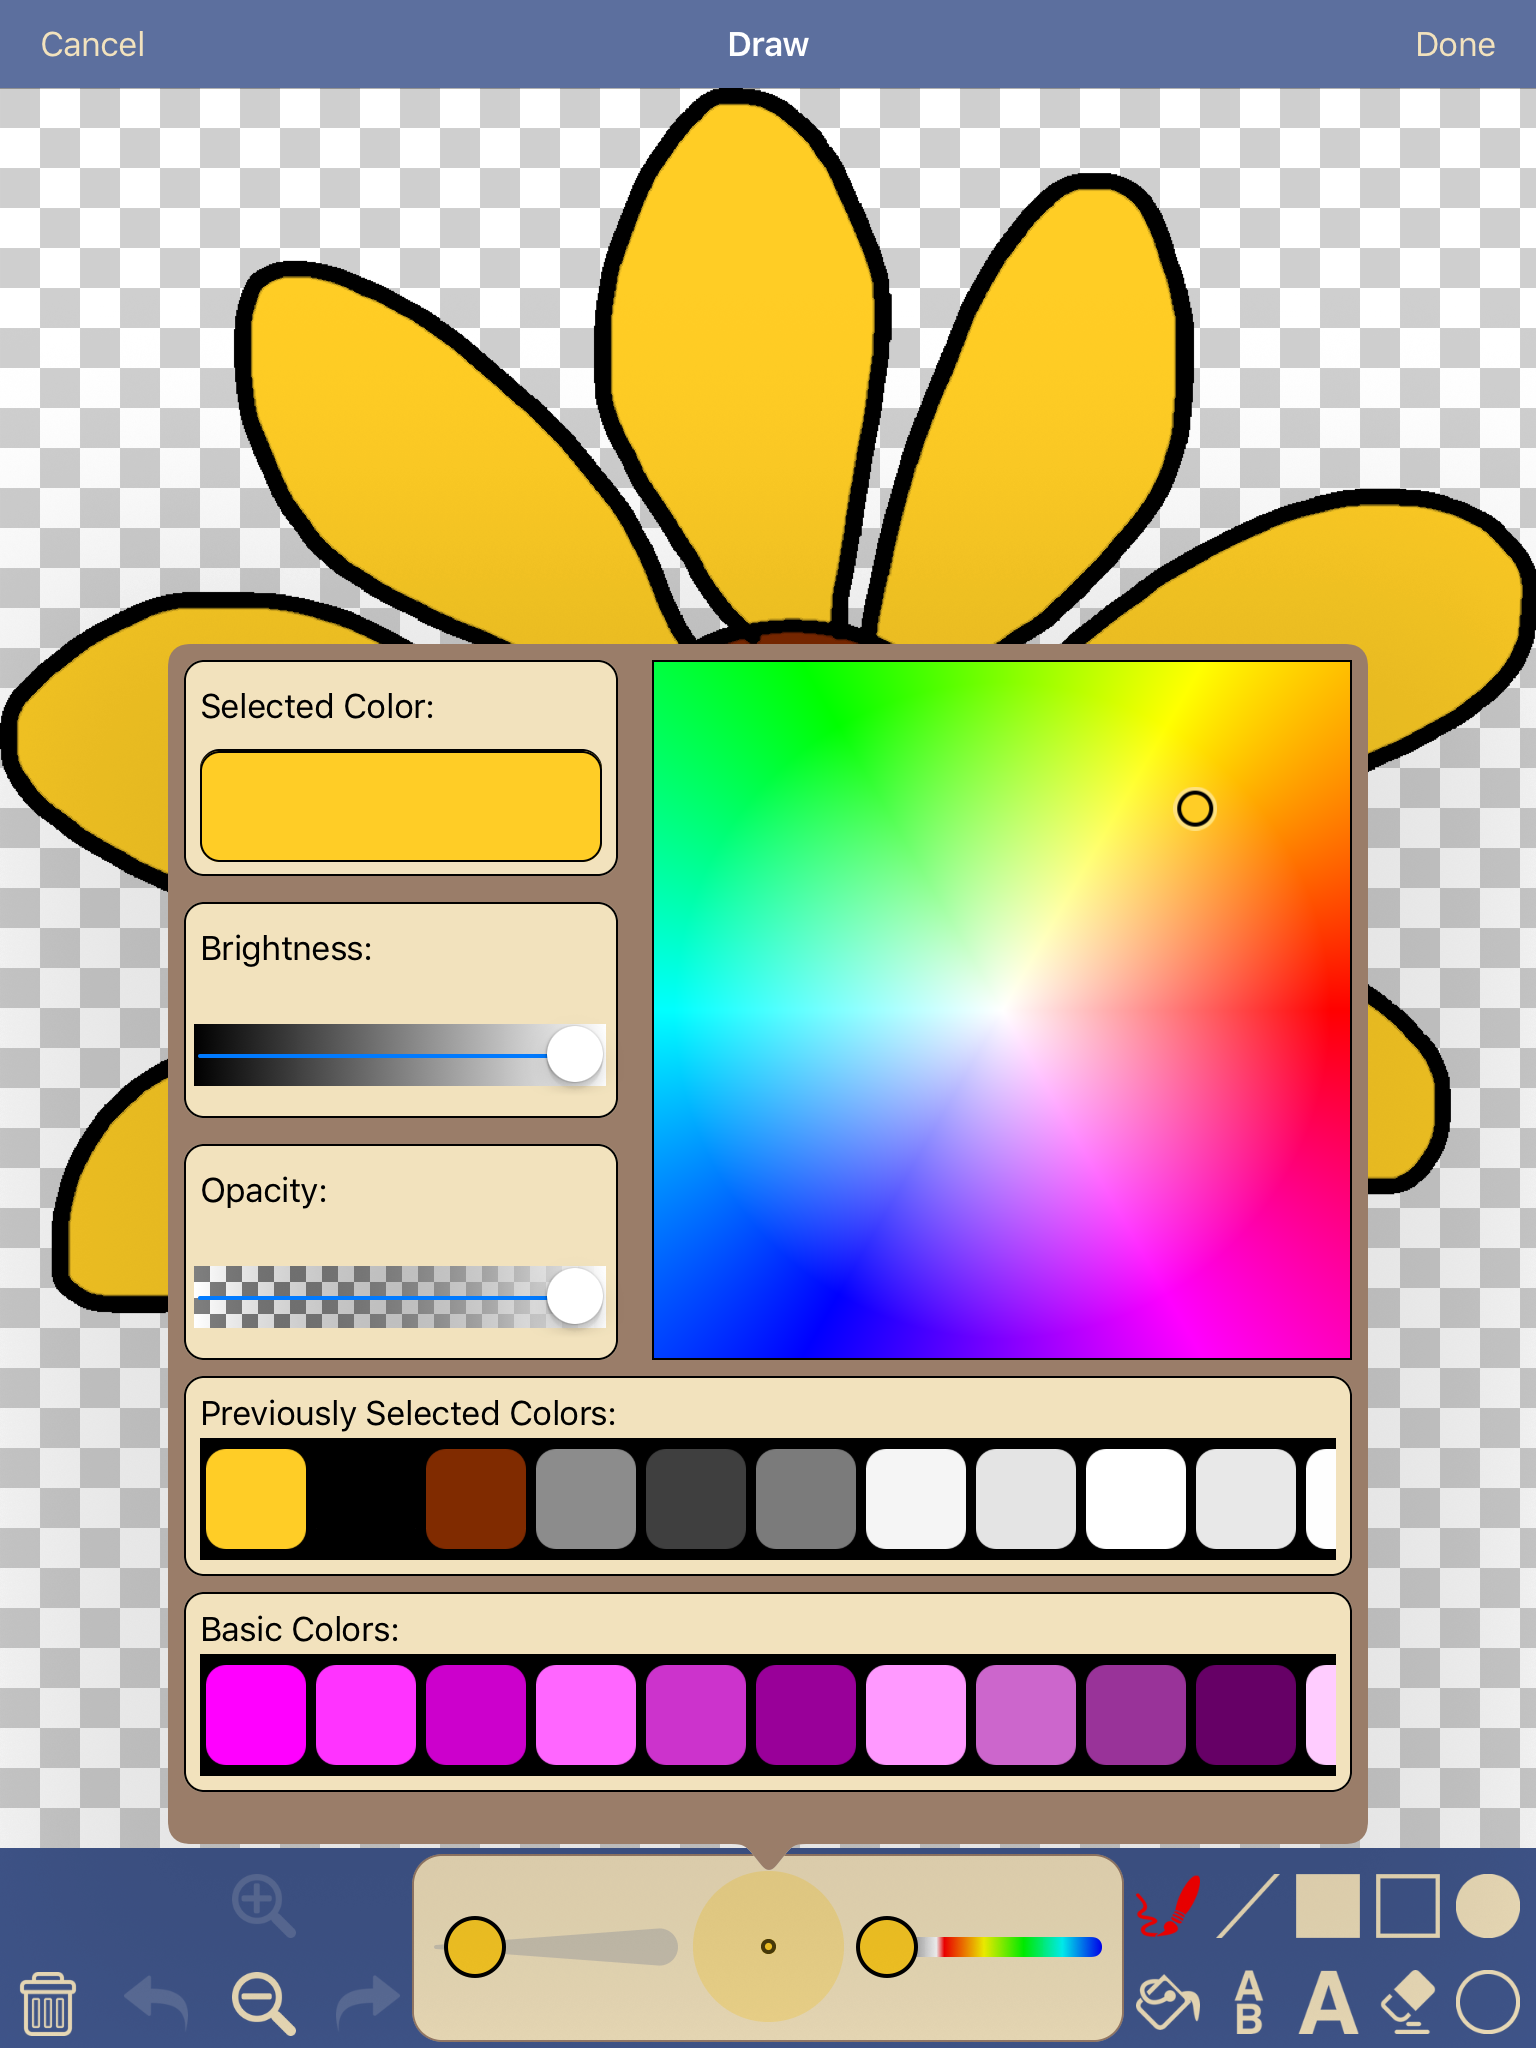 preview_draw_flower_popup.png